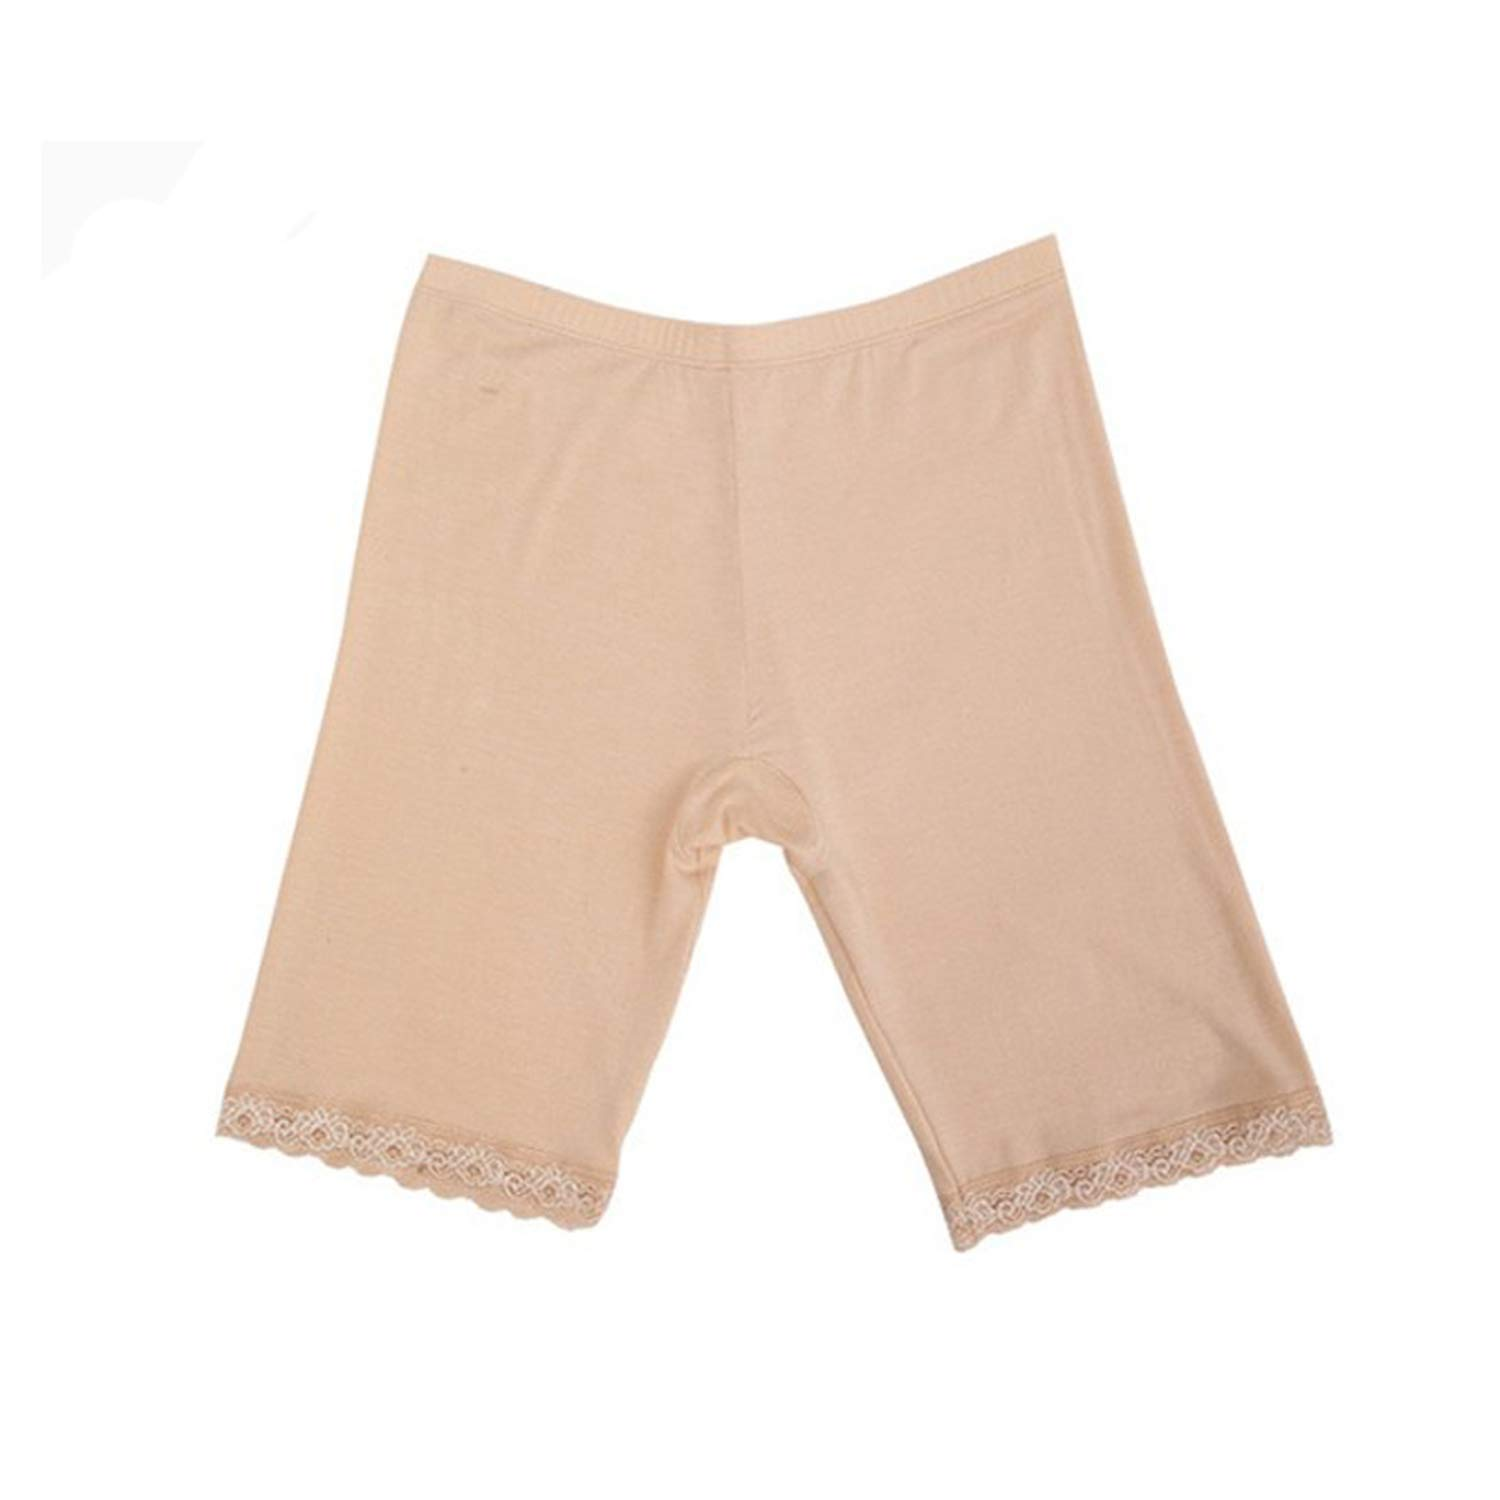 2 Pcs Safety Boxer Panties Pants with Lace for Women Summer Underwear Thin Inner Boxer Shorts Plus Size